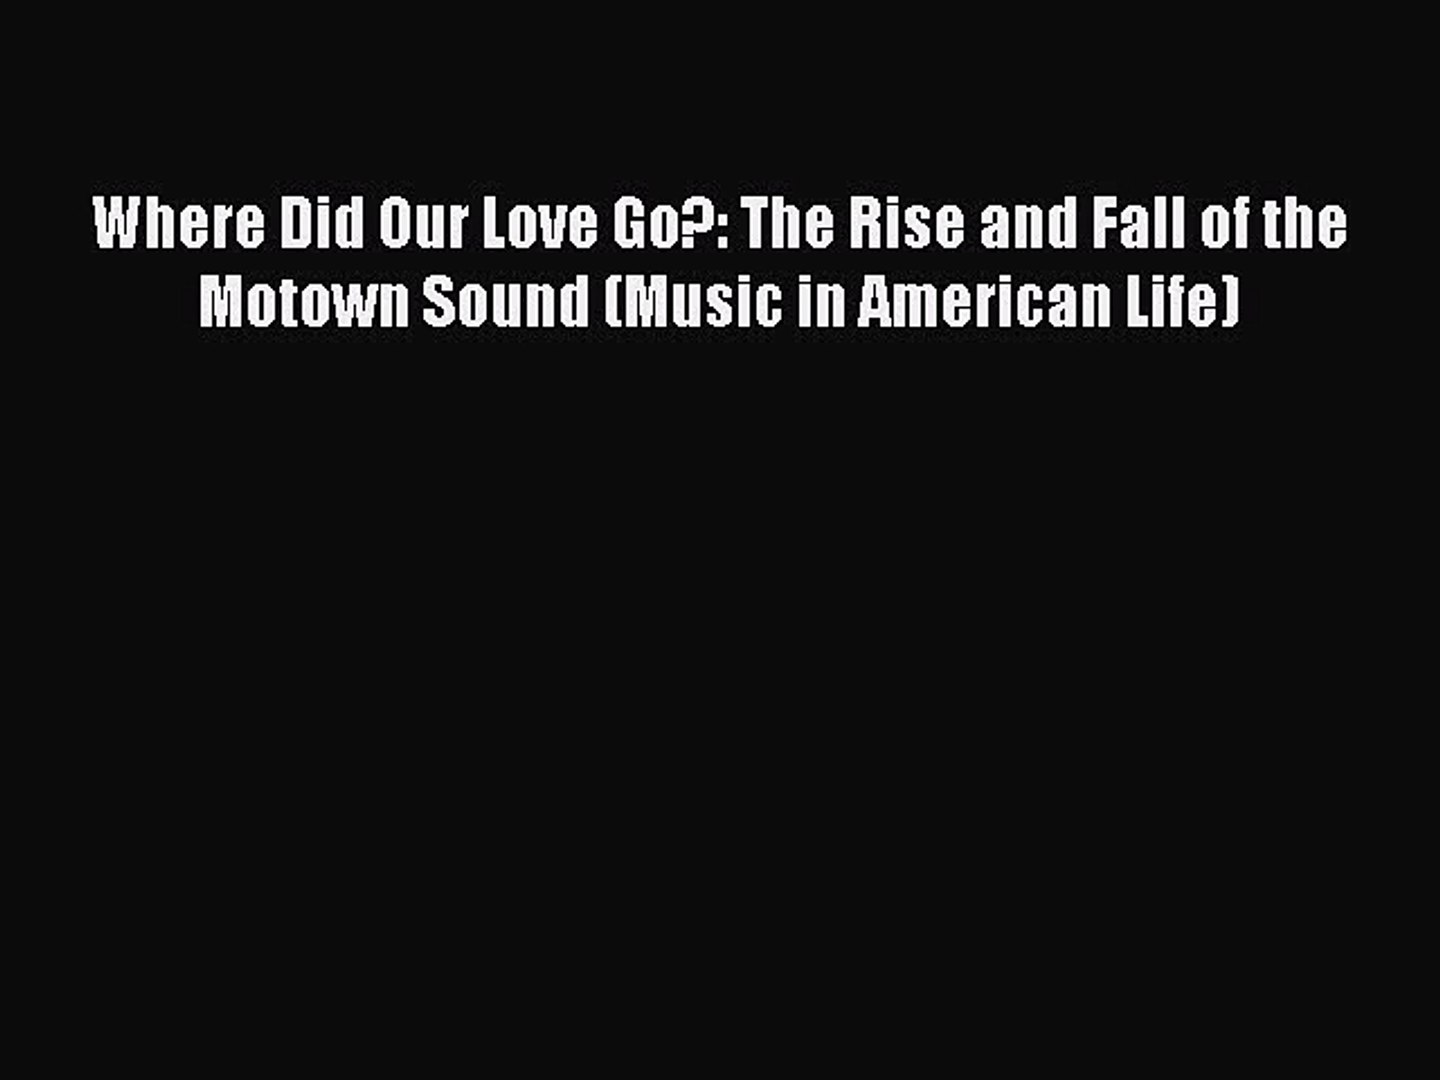 Download Where Did Our Love Go?: The Rise and Fall of the Motown Sound (Music in American Life)